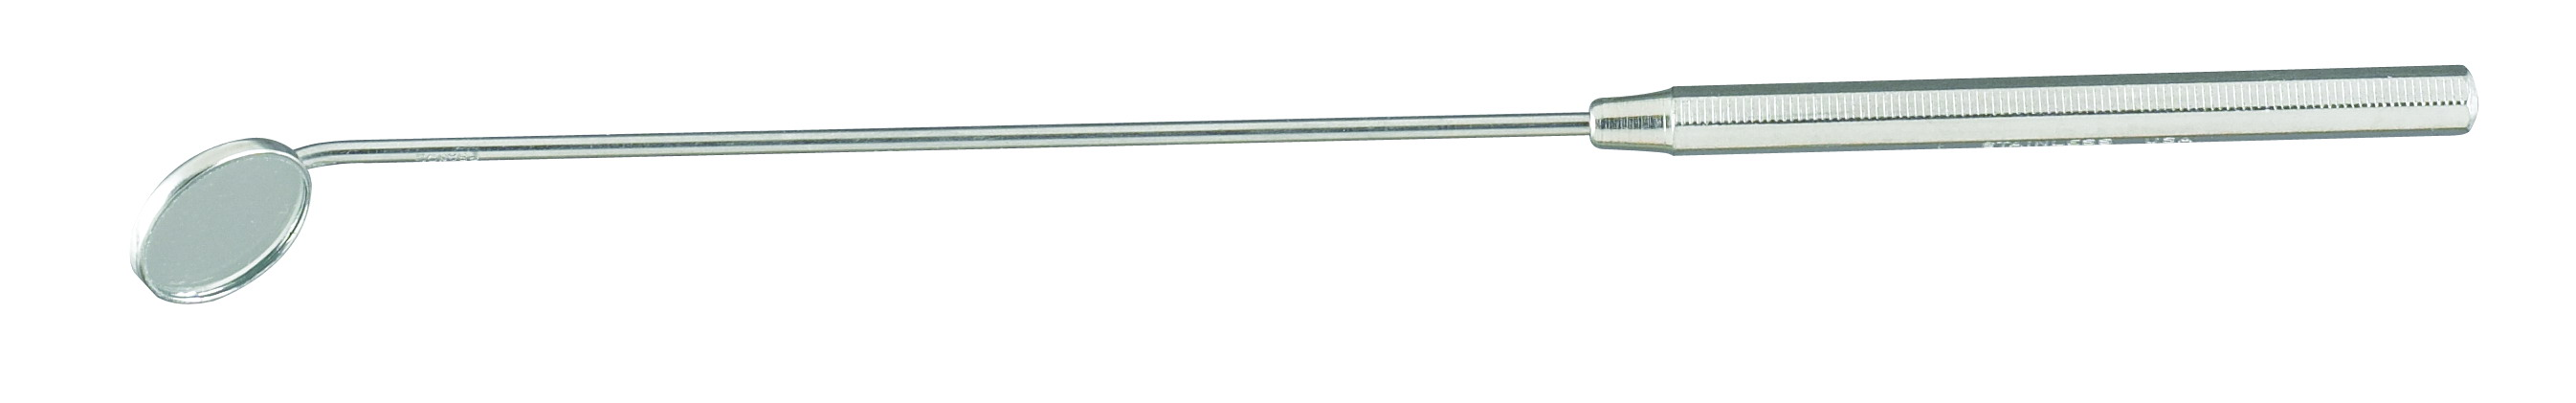 laryngeal-mirror-size-1-with-octagon-threaded-handle-16-mm-23-6-1-miltex.jpg